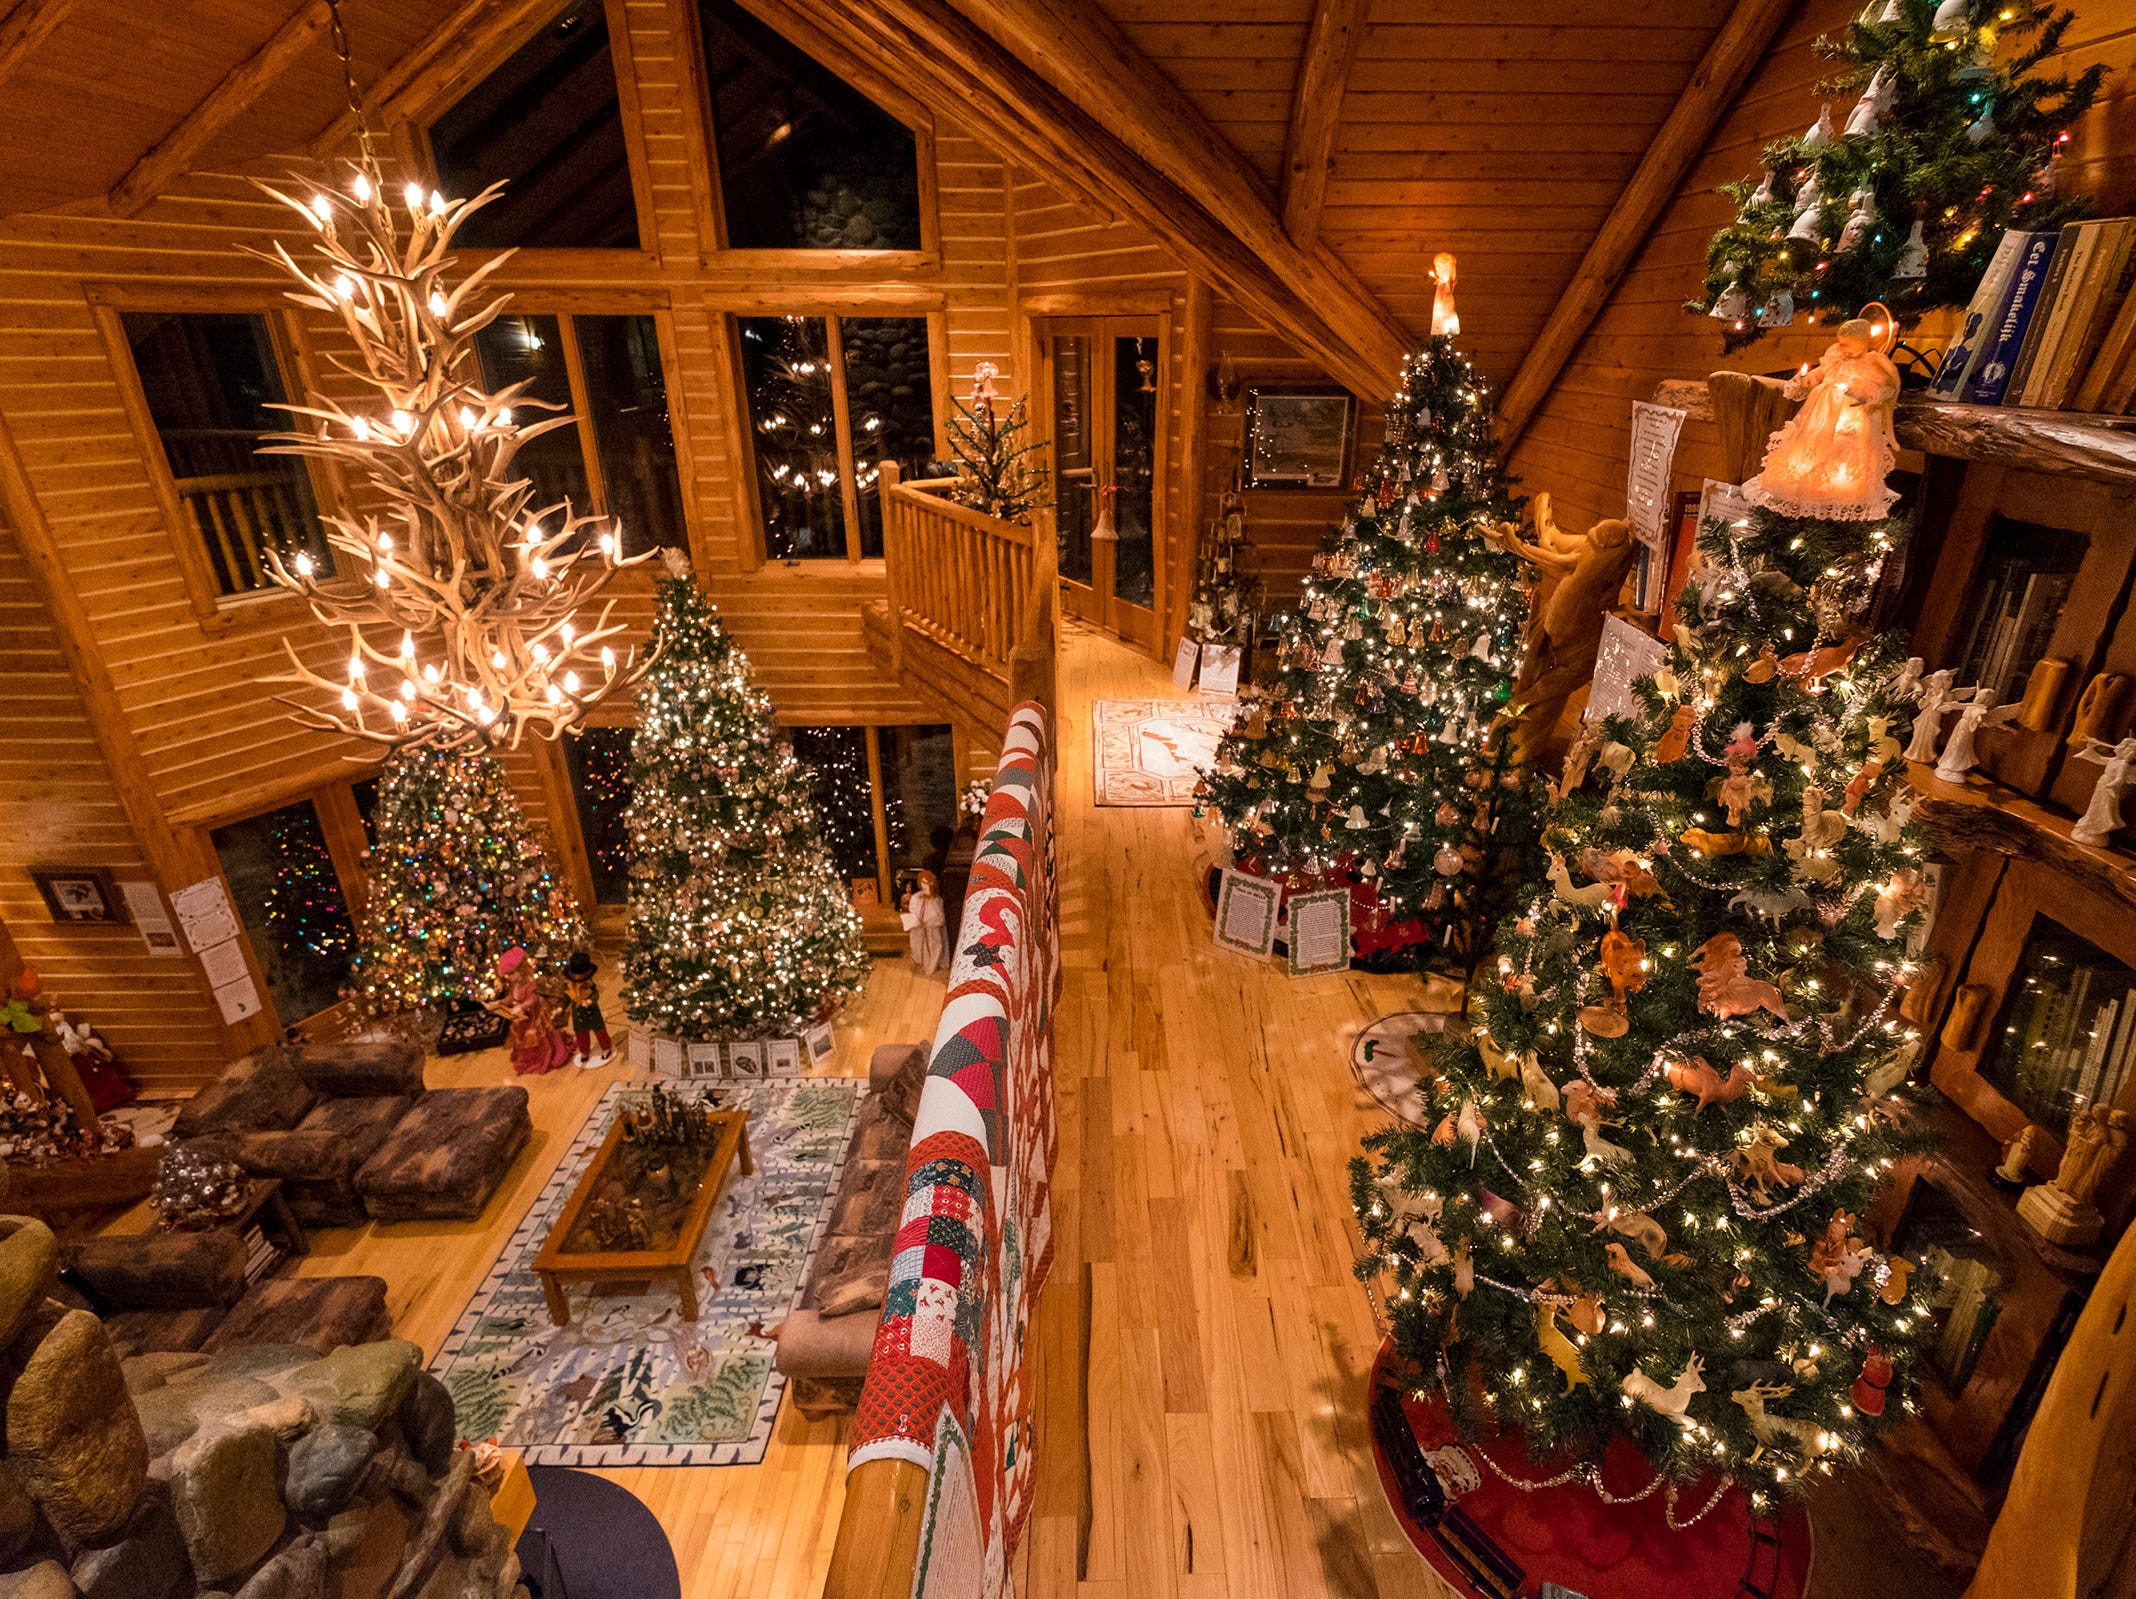 Christmas trees are arranged on different floors of Al and Diane Kodet's Algonac home for the annual History of the Christmas Tree Walk. The event fills their three-story home with more than 200 Christmas trees, and runs until several days after Christmas.